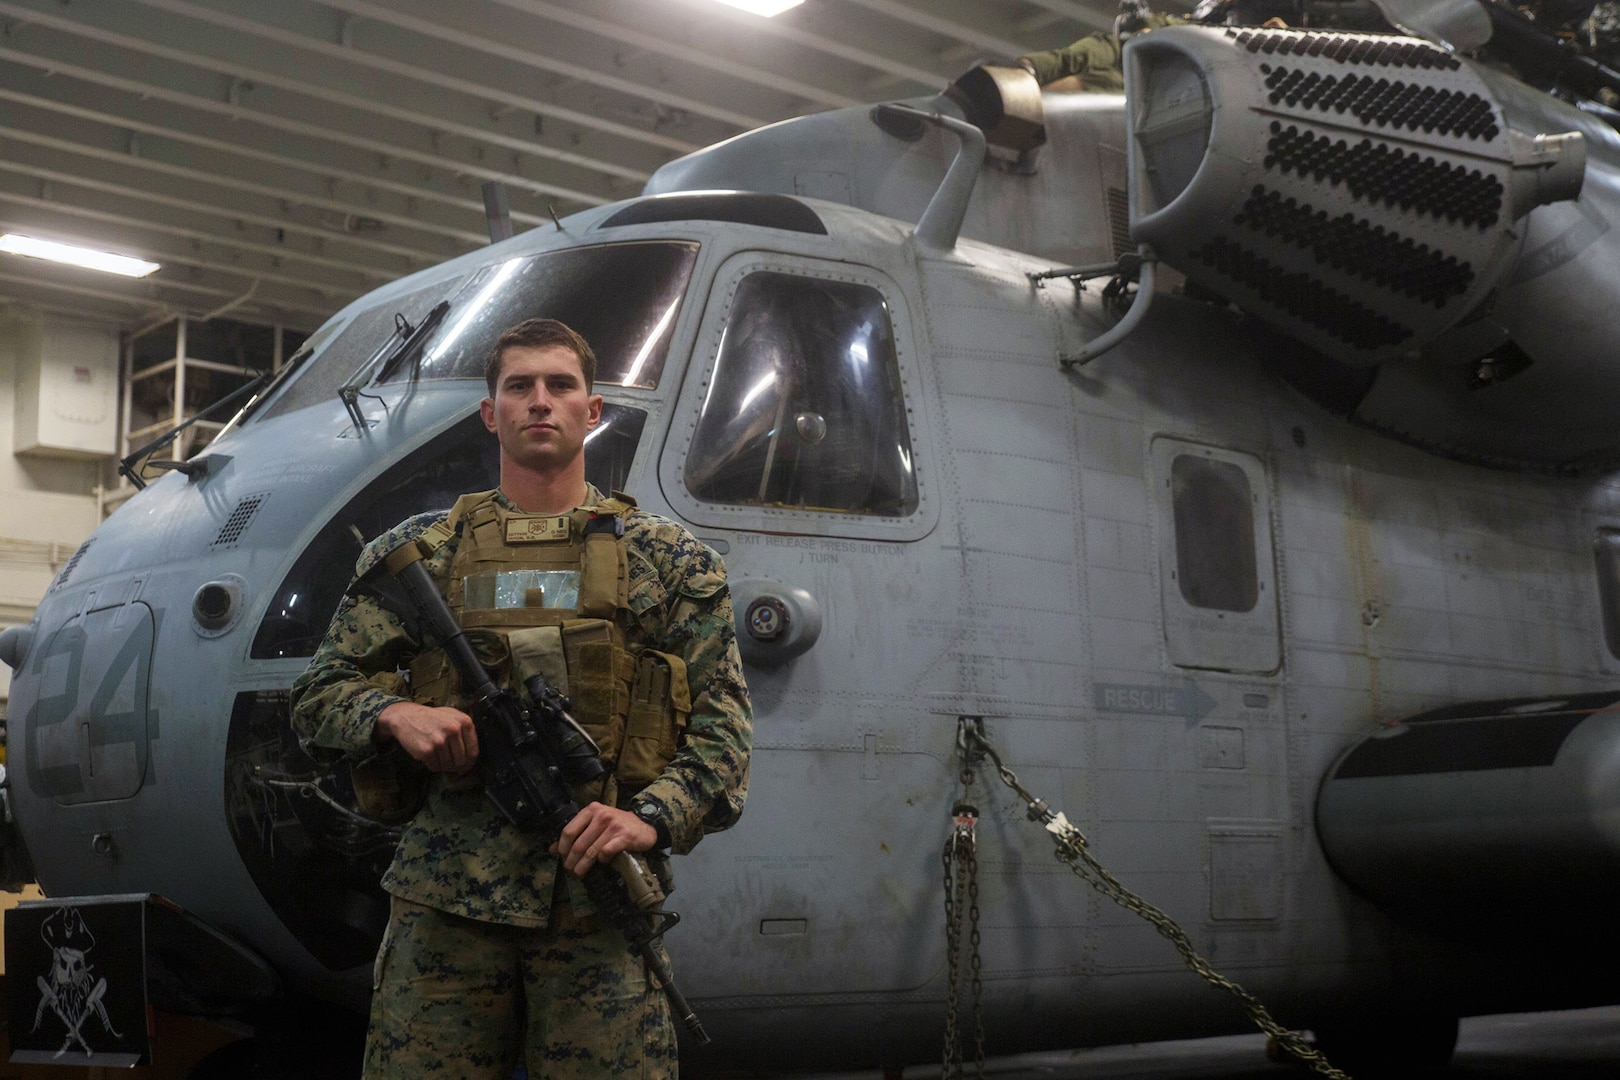 Get to the Chopper: Air Assault Company